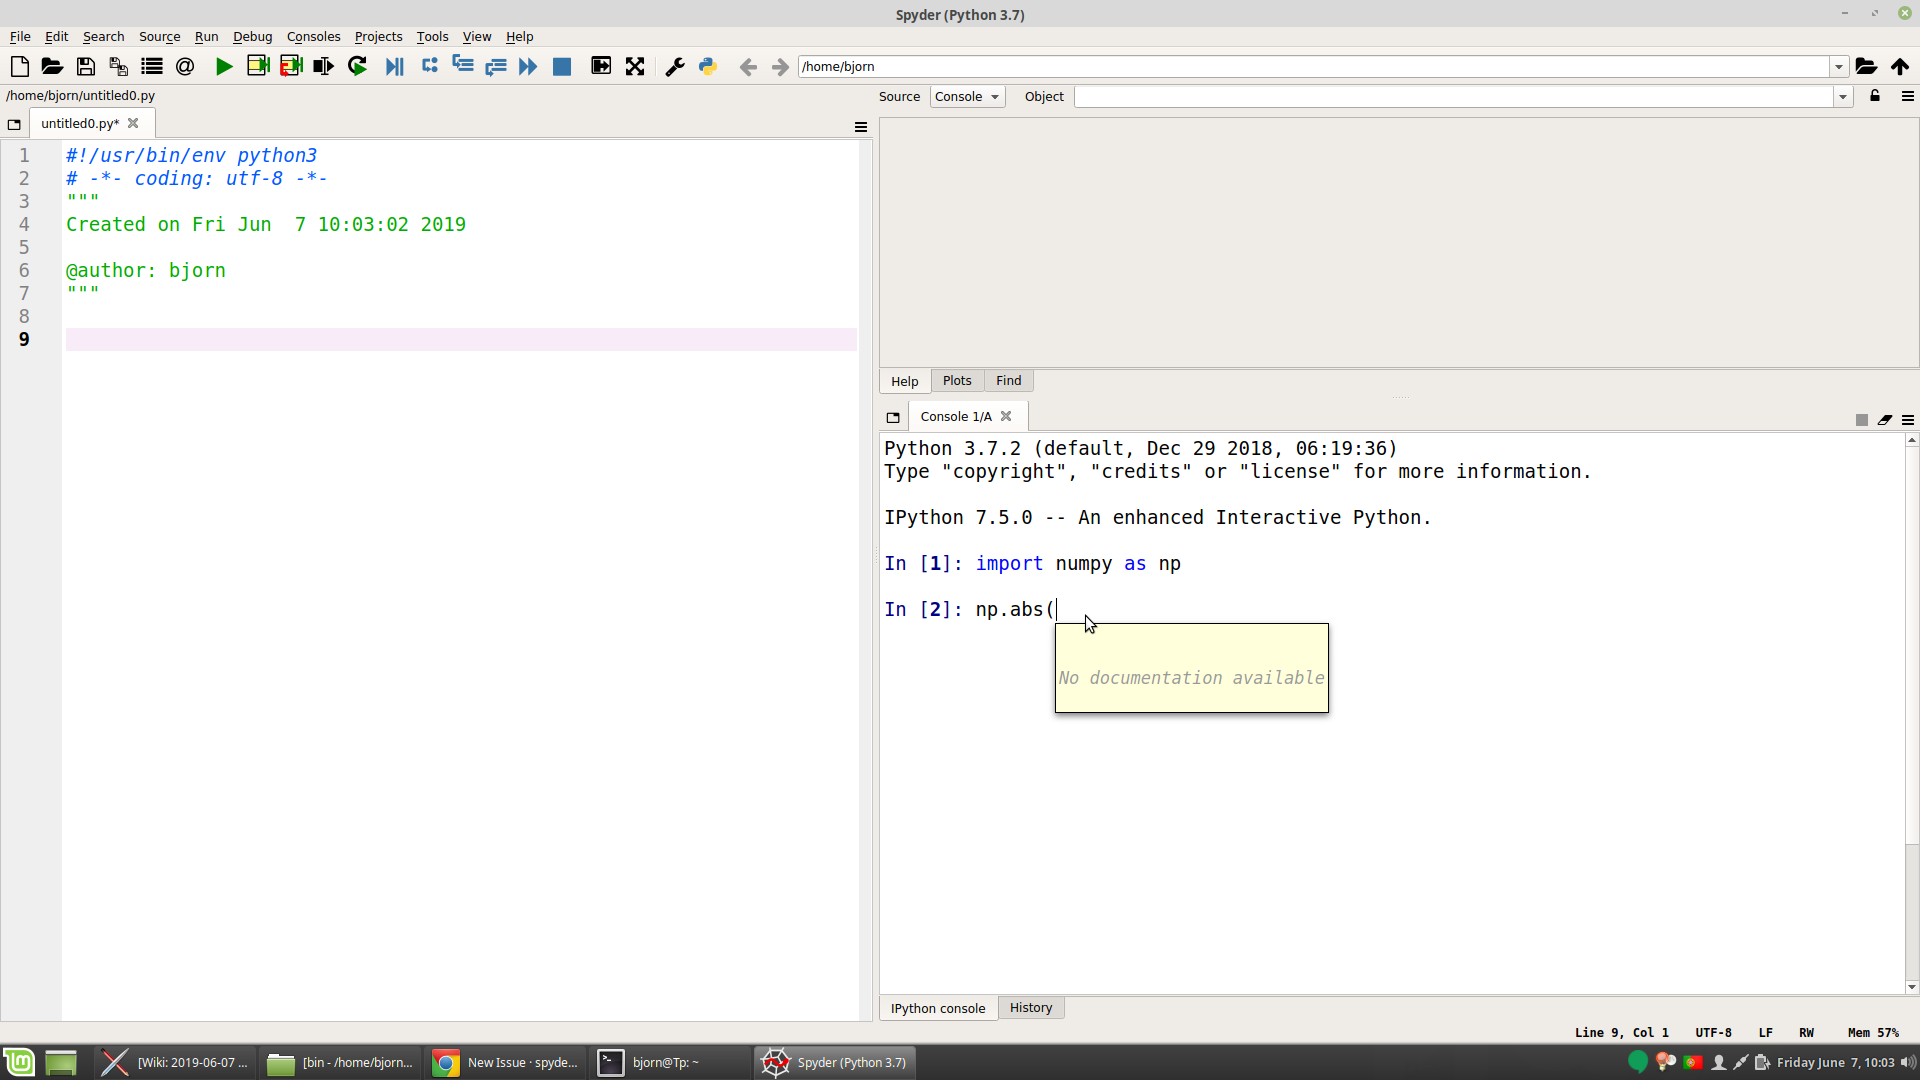 Calltips in IPython console are empty but work in qtconsole